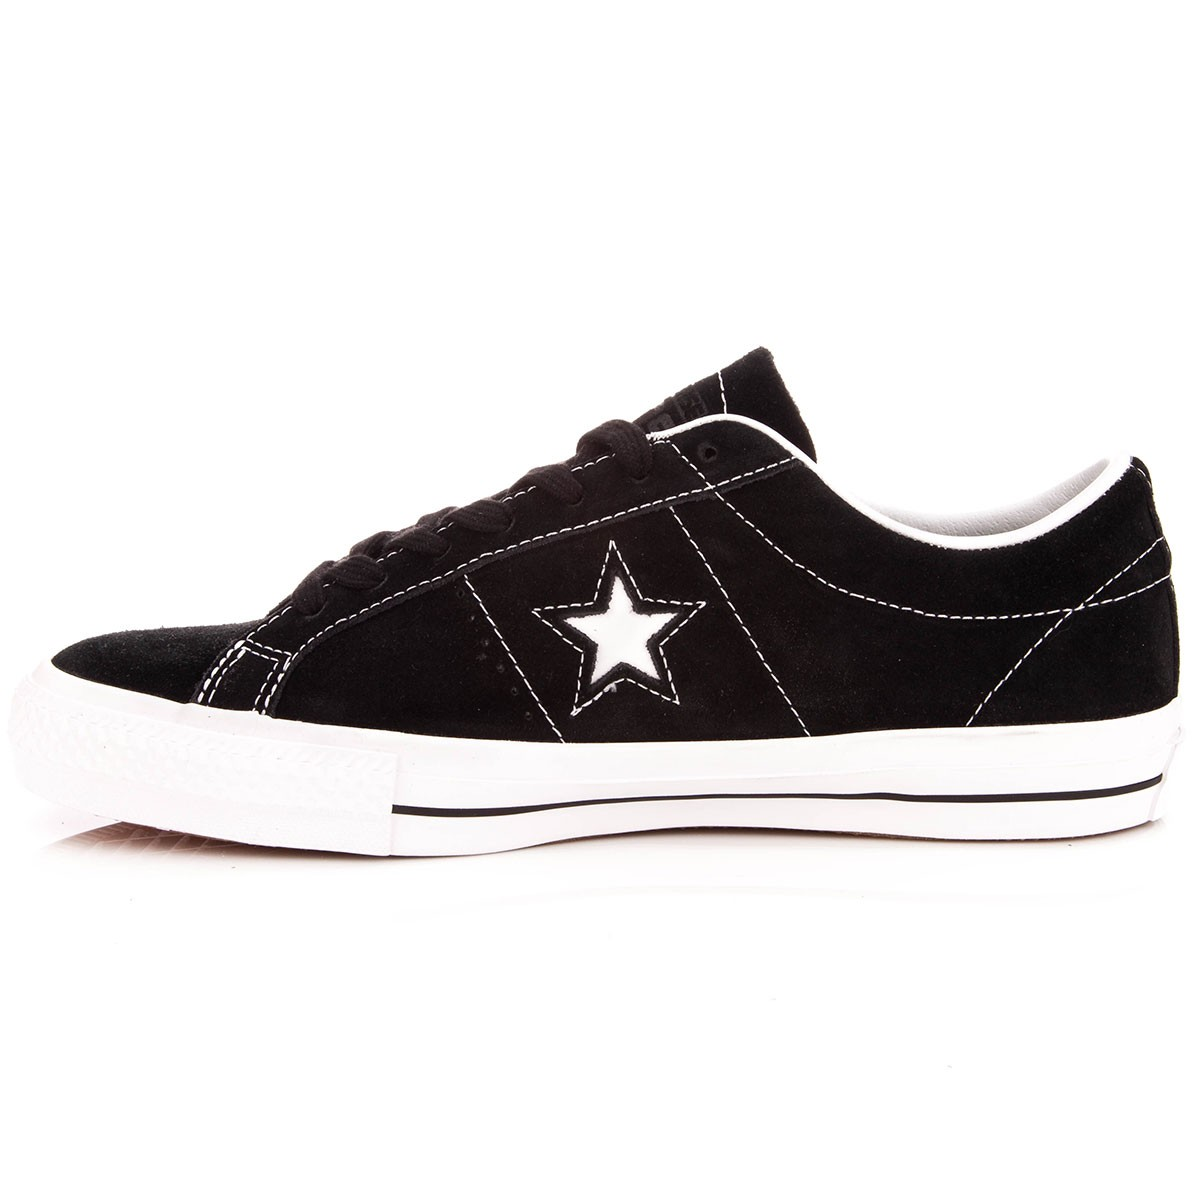 805efeabf4c Converse One Star Skate Suede Shoes